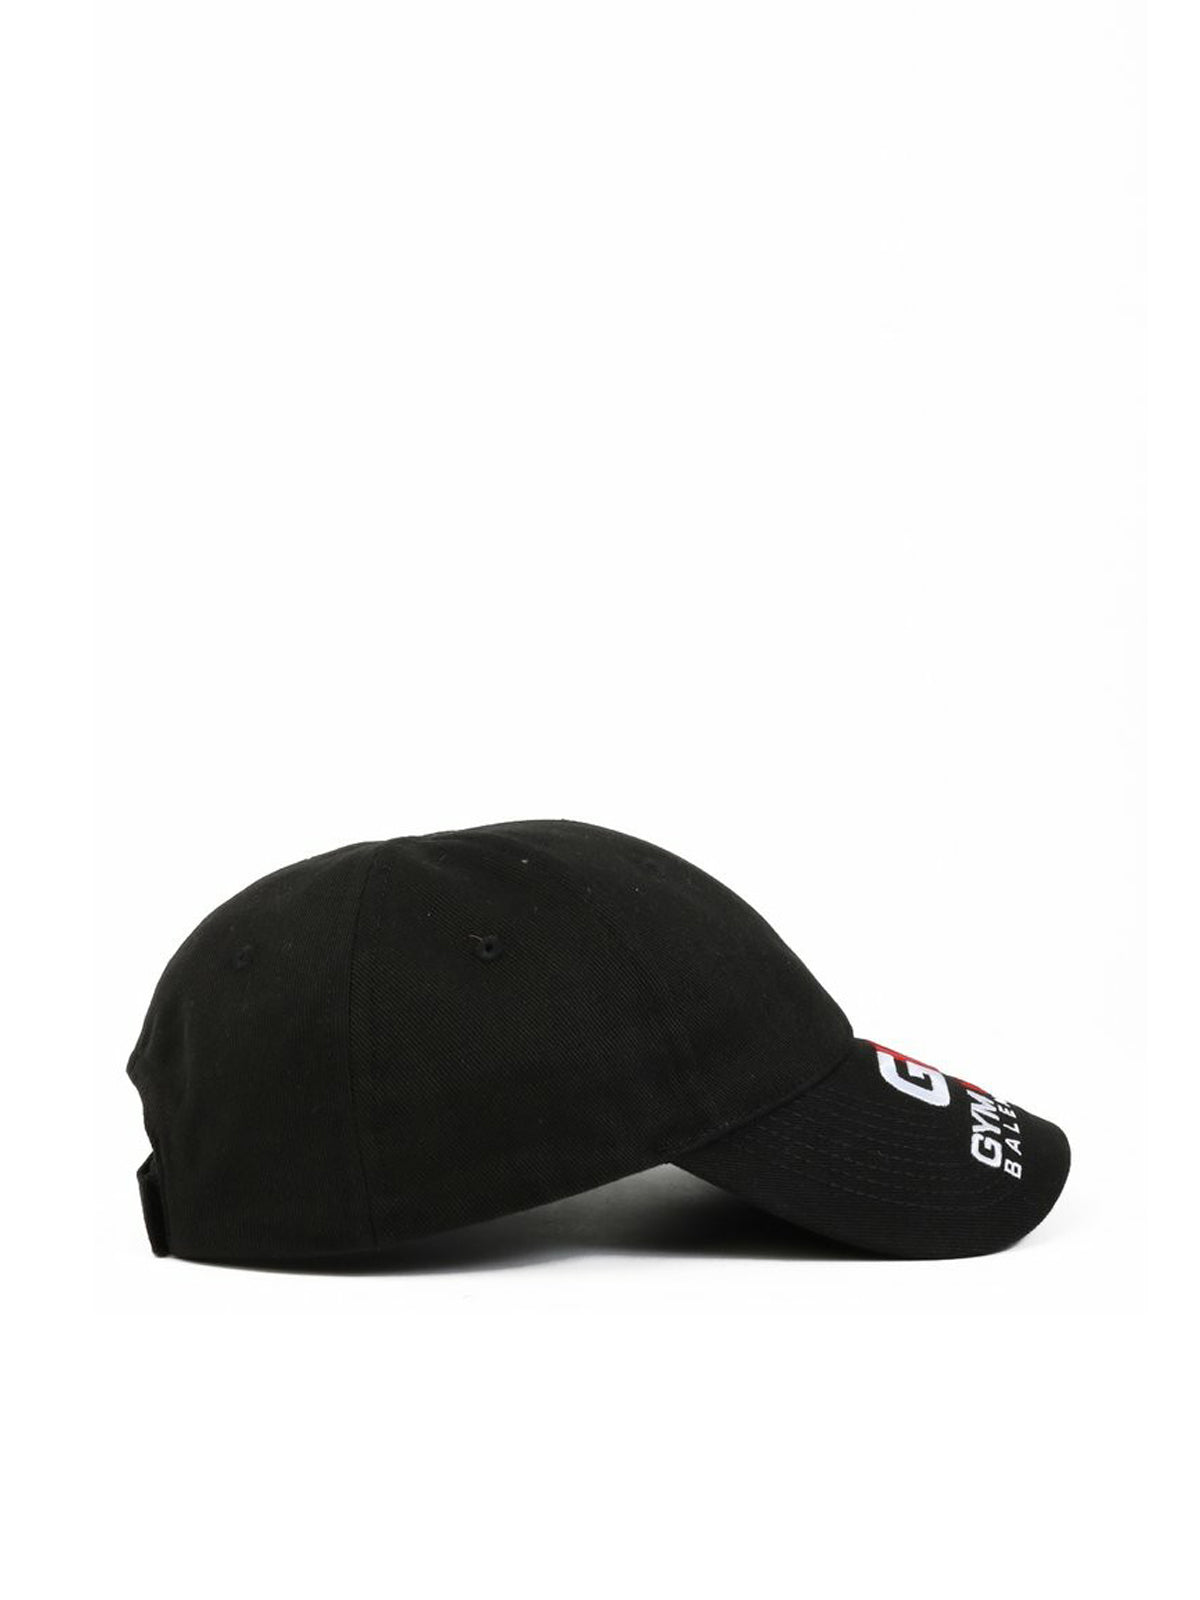 Cappello da baseball Gym Wear